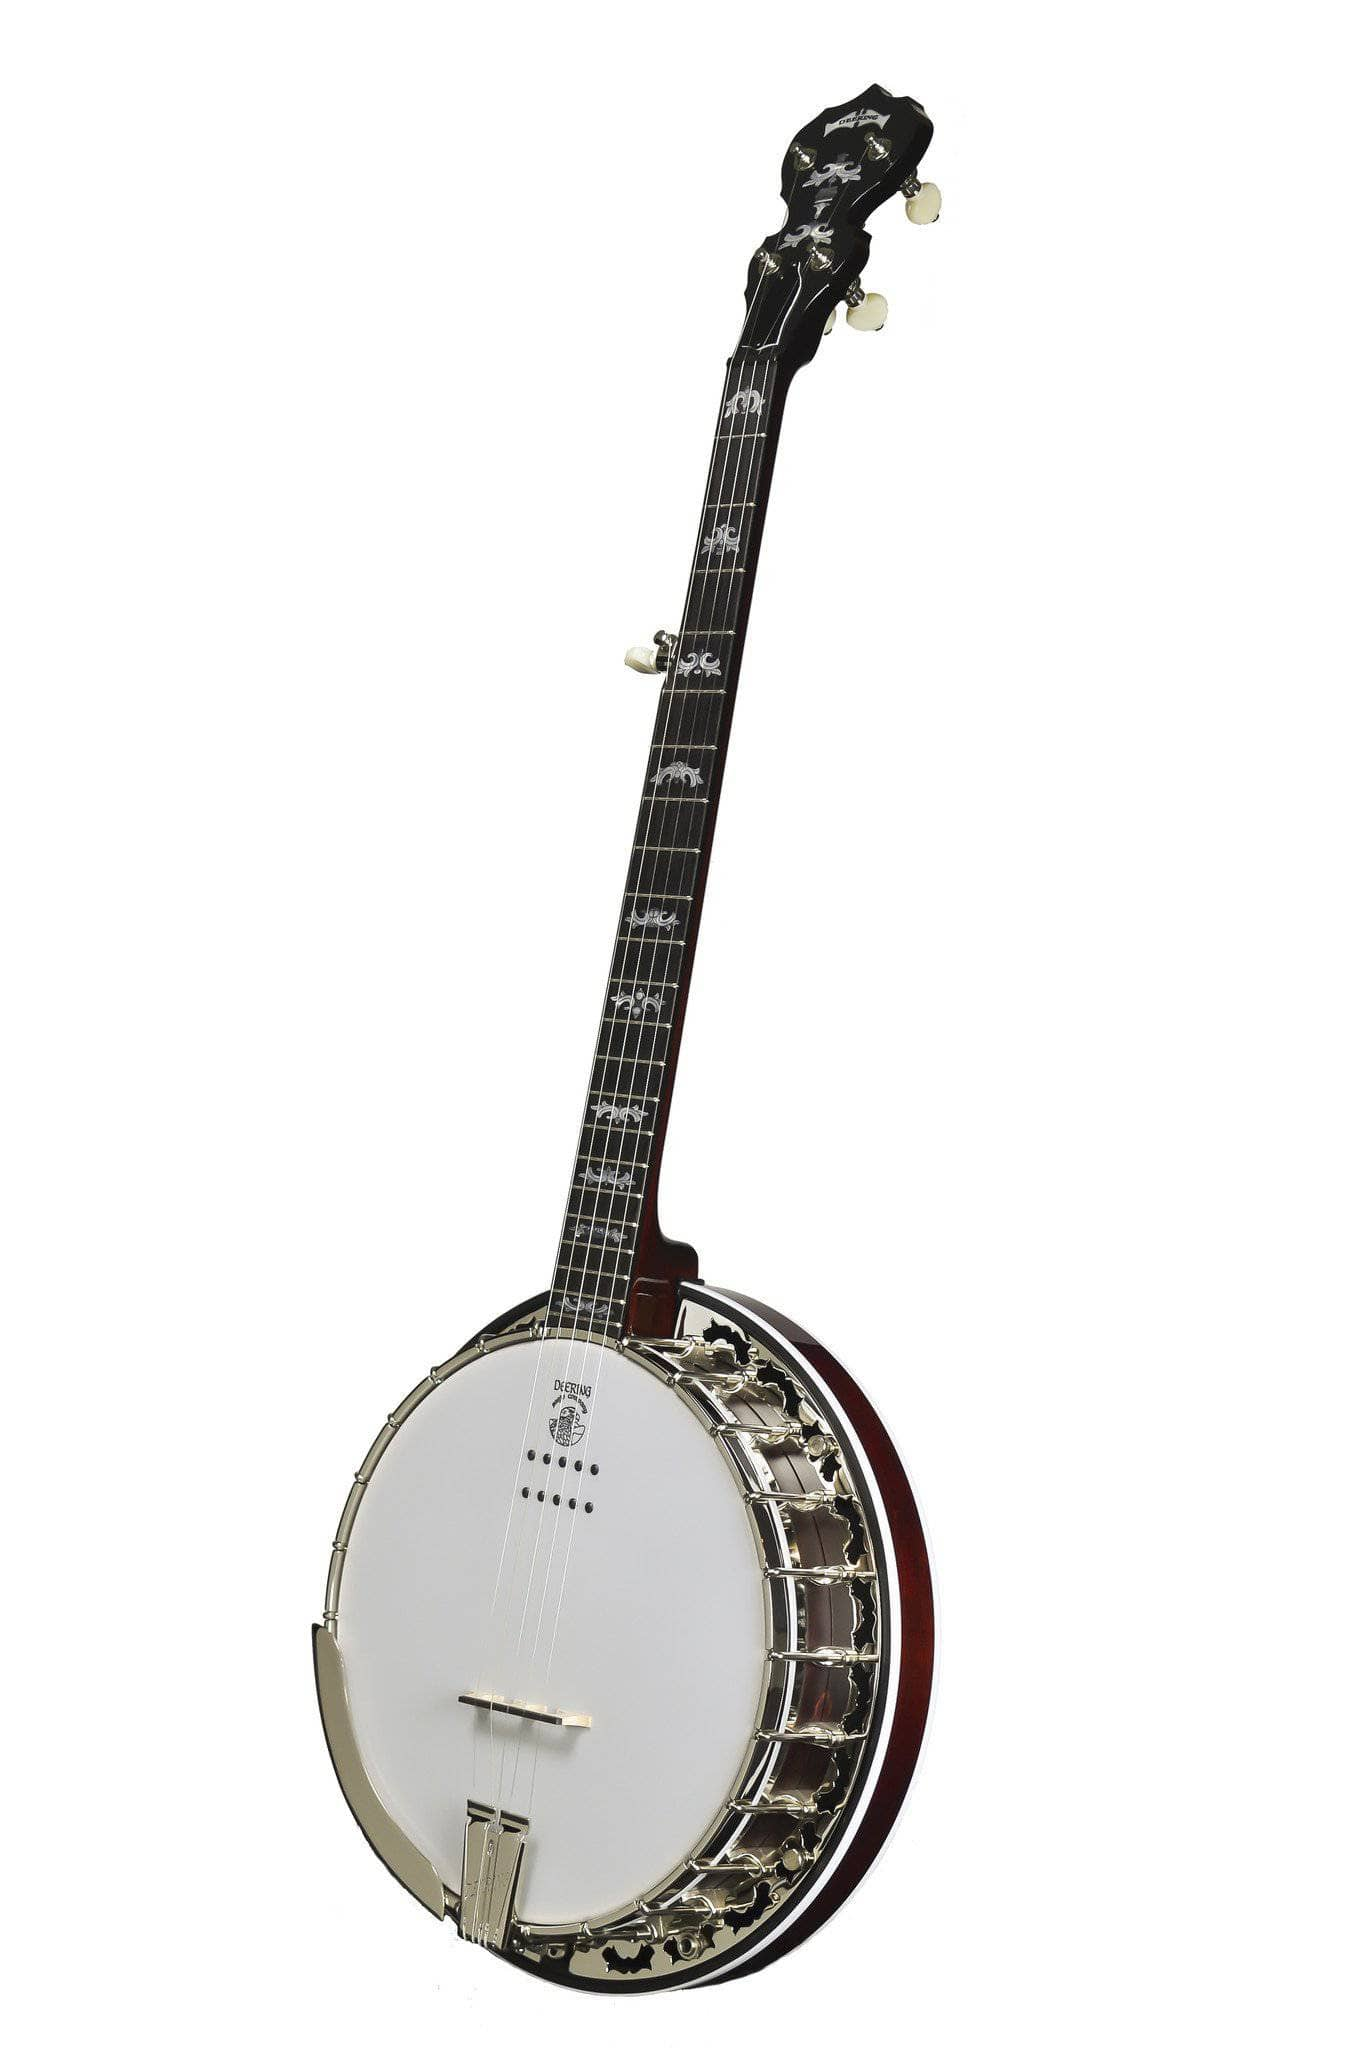 Deering Eagle II Acoustic/Electric 5-String Banjo - Banjo Studio